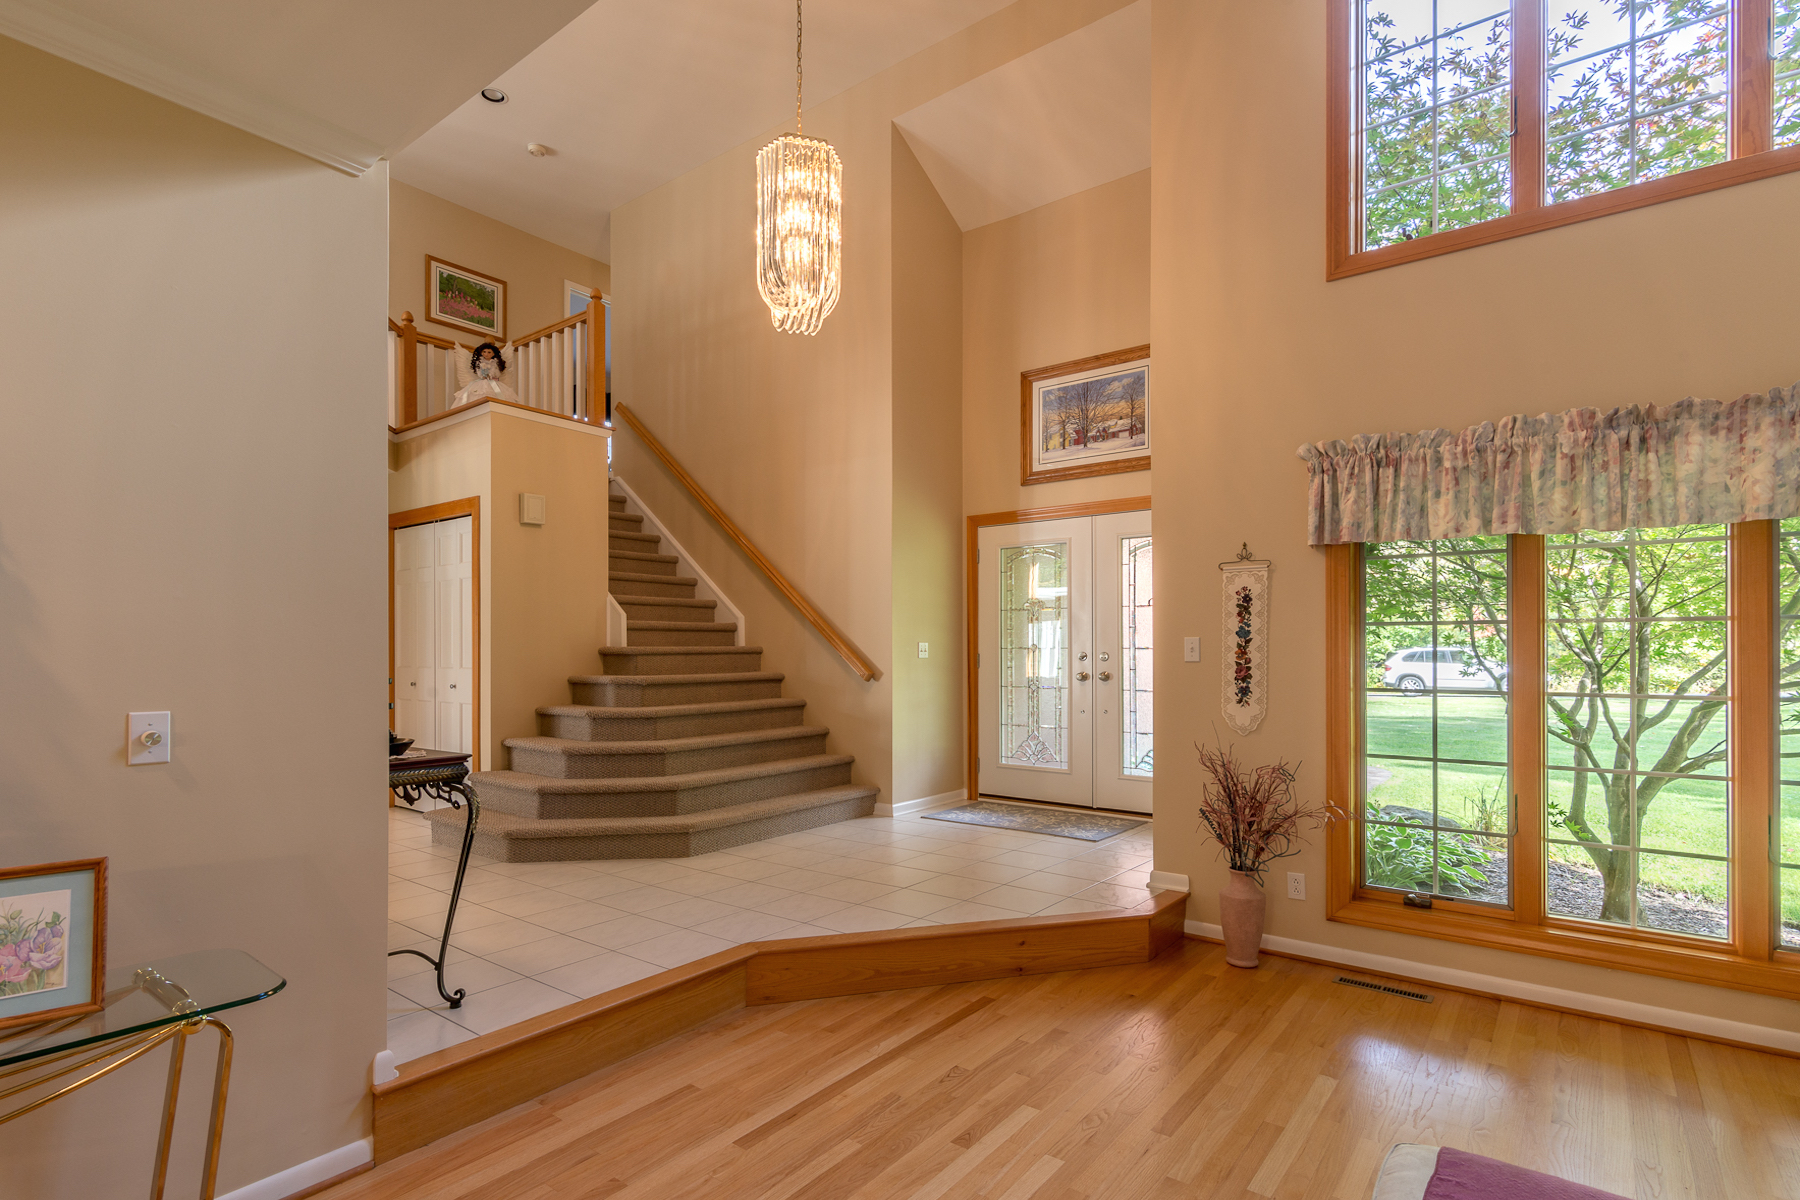 Additional photo for property listing at Spectacular Two Home Treasure 7190  Serpentine Dr Boston, New York 14127 United States